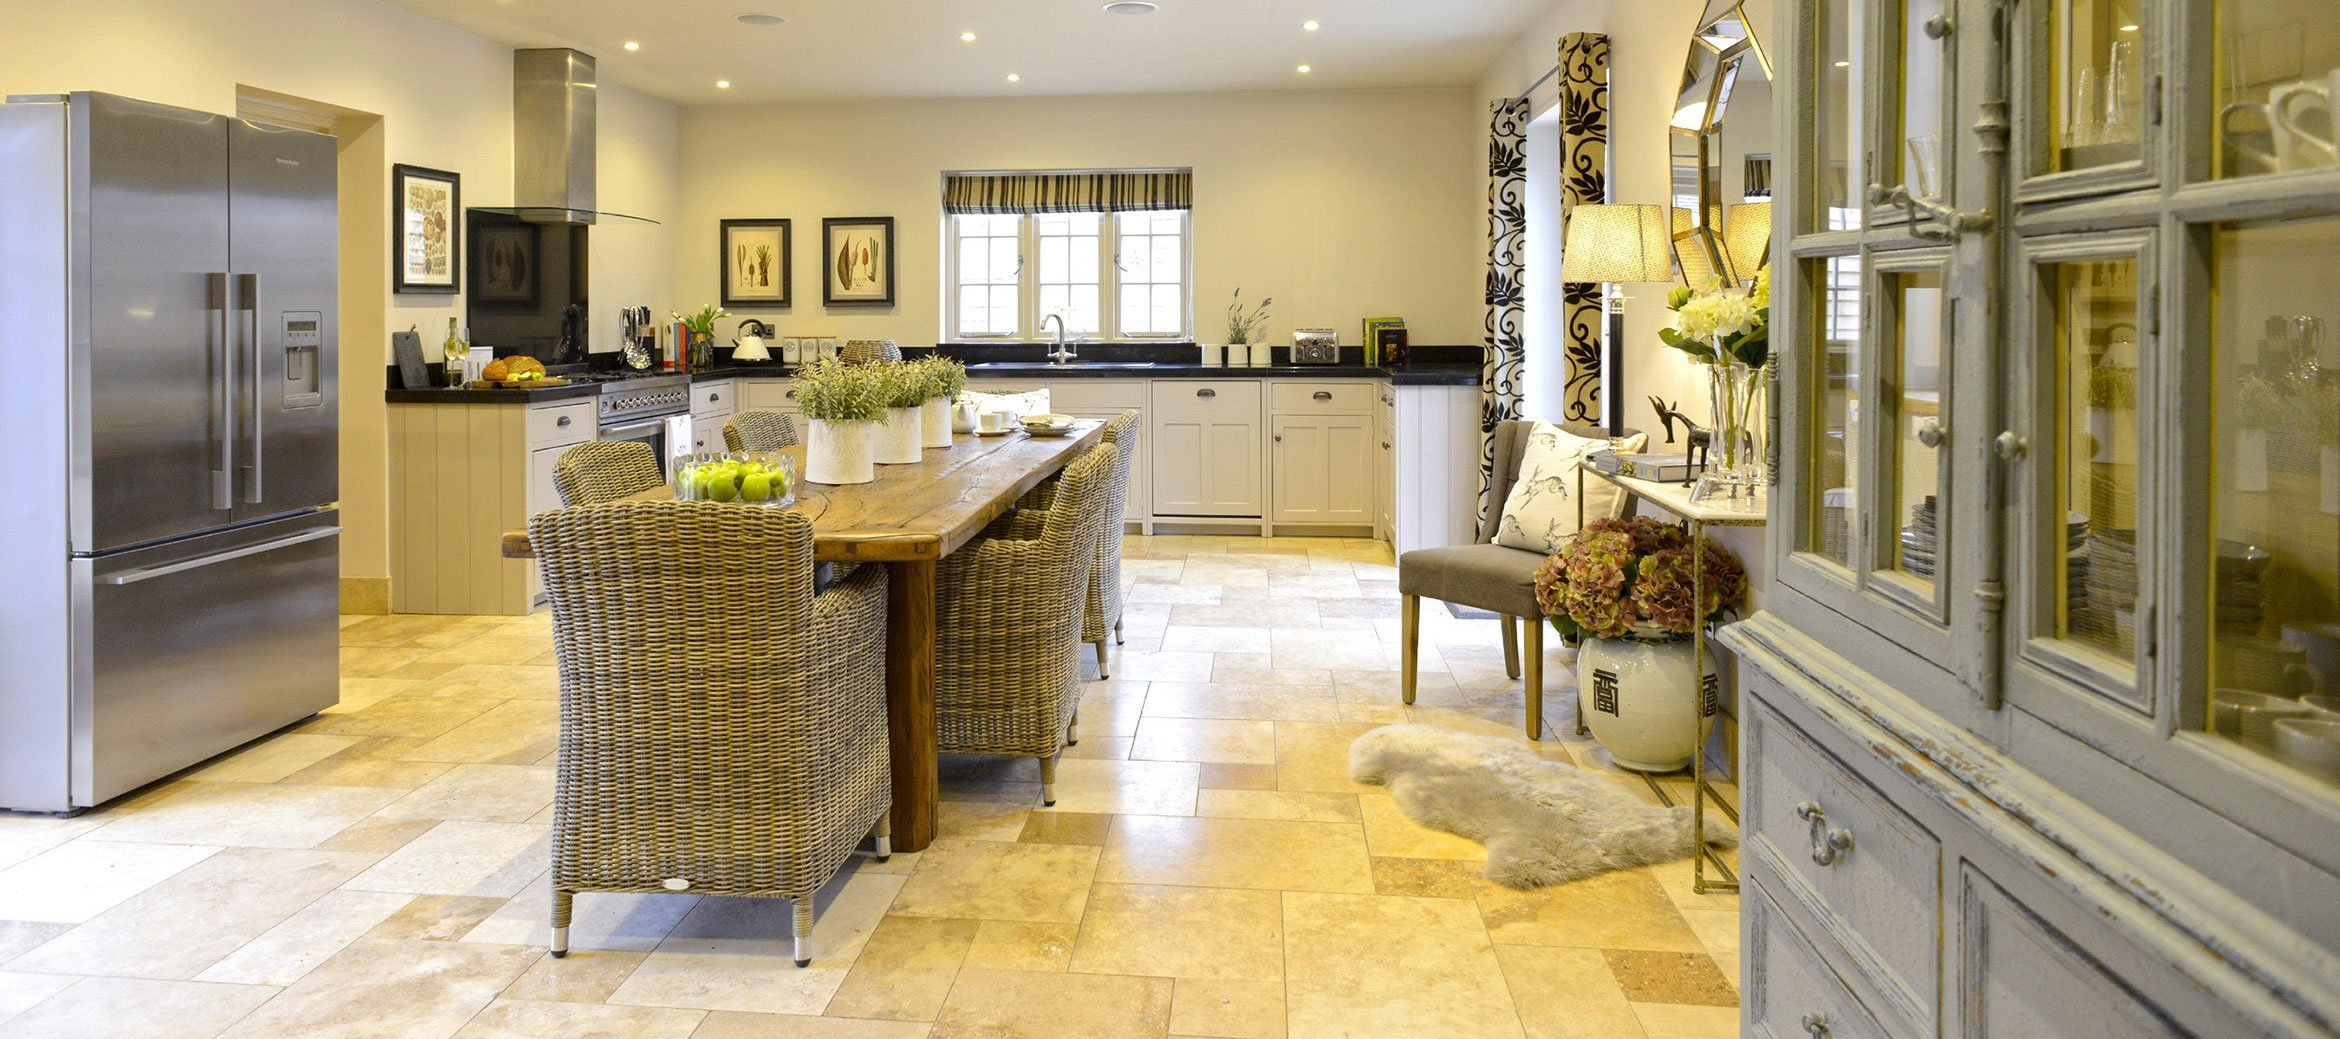 the-laurels-draycott-kitchen-dining-room